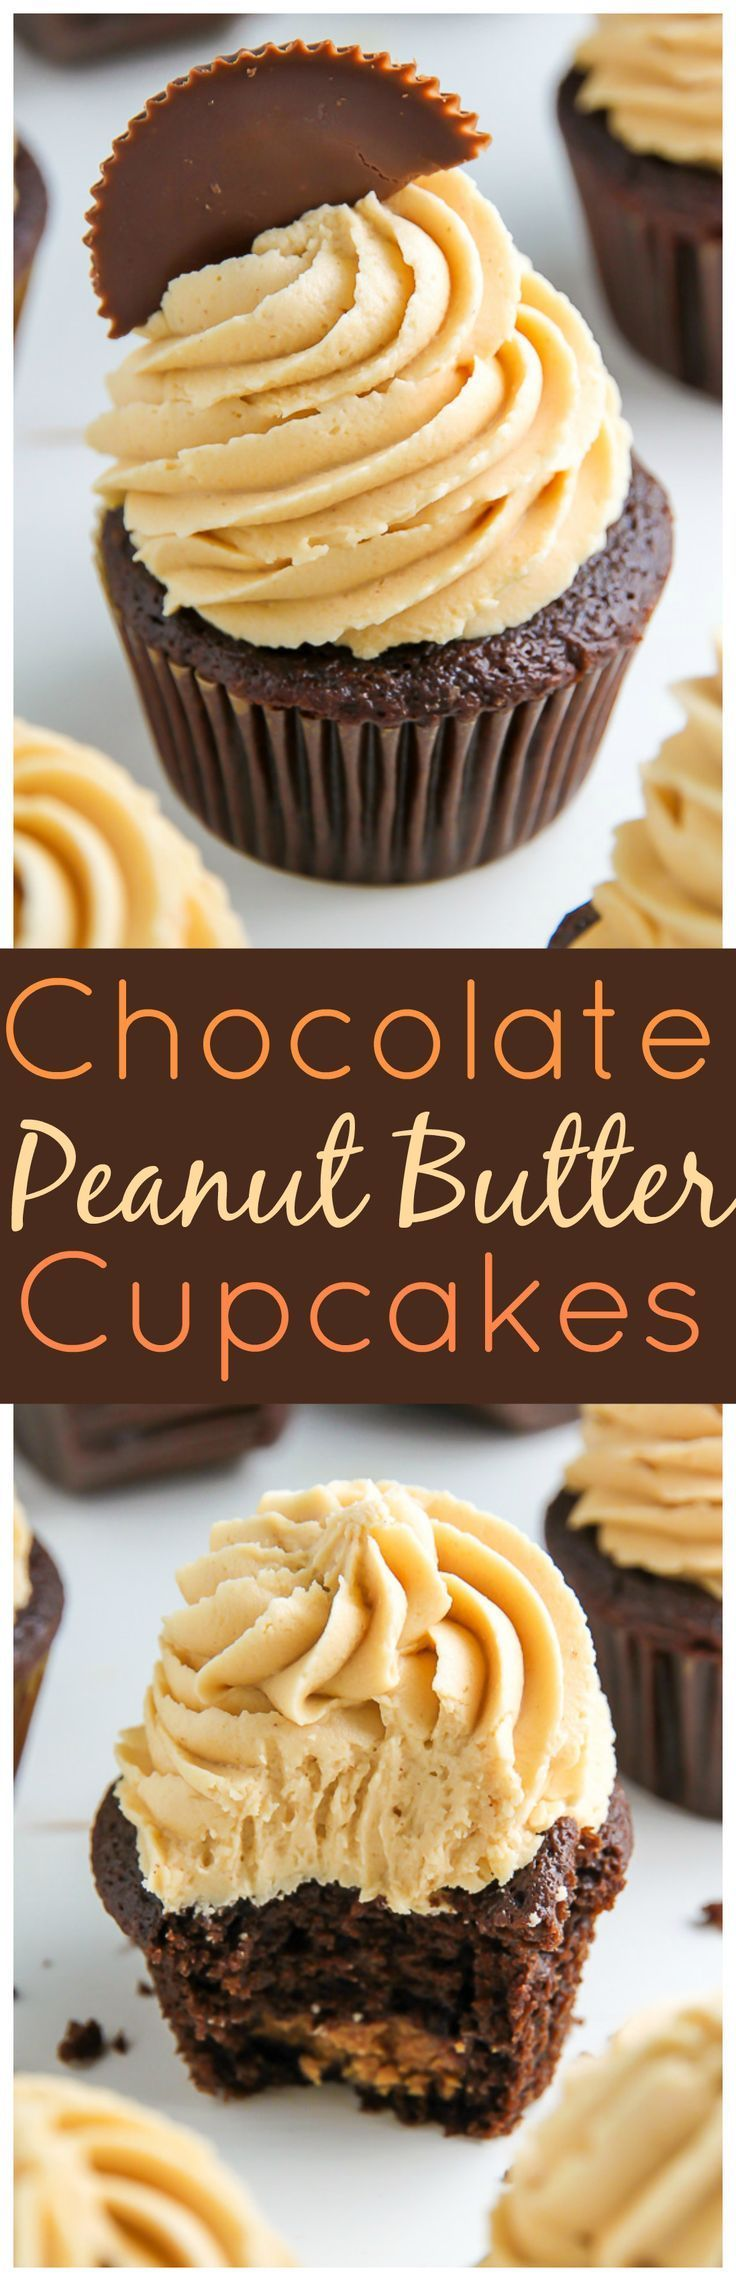 Ultimate Chocolate Peanut Butter Cupcakes is part of Chocolate peanut butter cupcakes - Super moist chocolate cupcakes have a peanut butter cup INSIDE and are topped with creamy peanut butter frosting